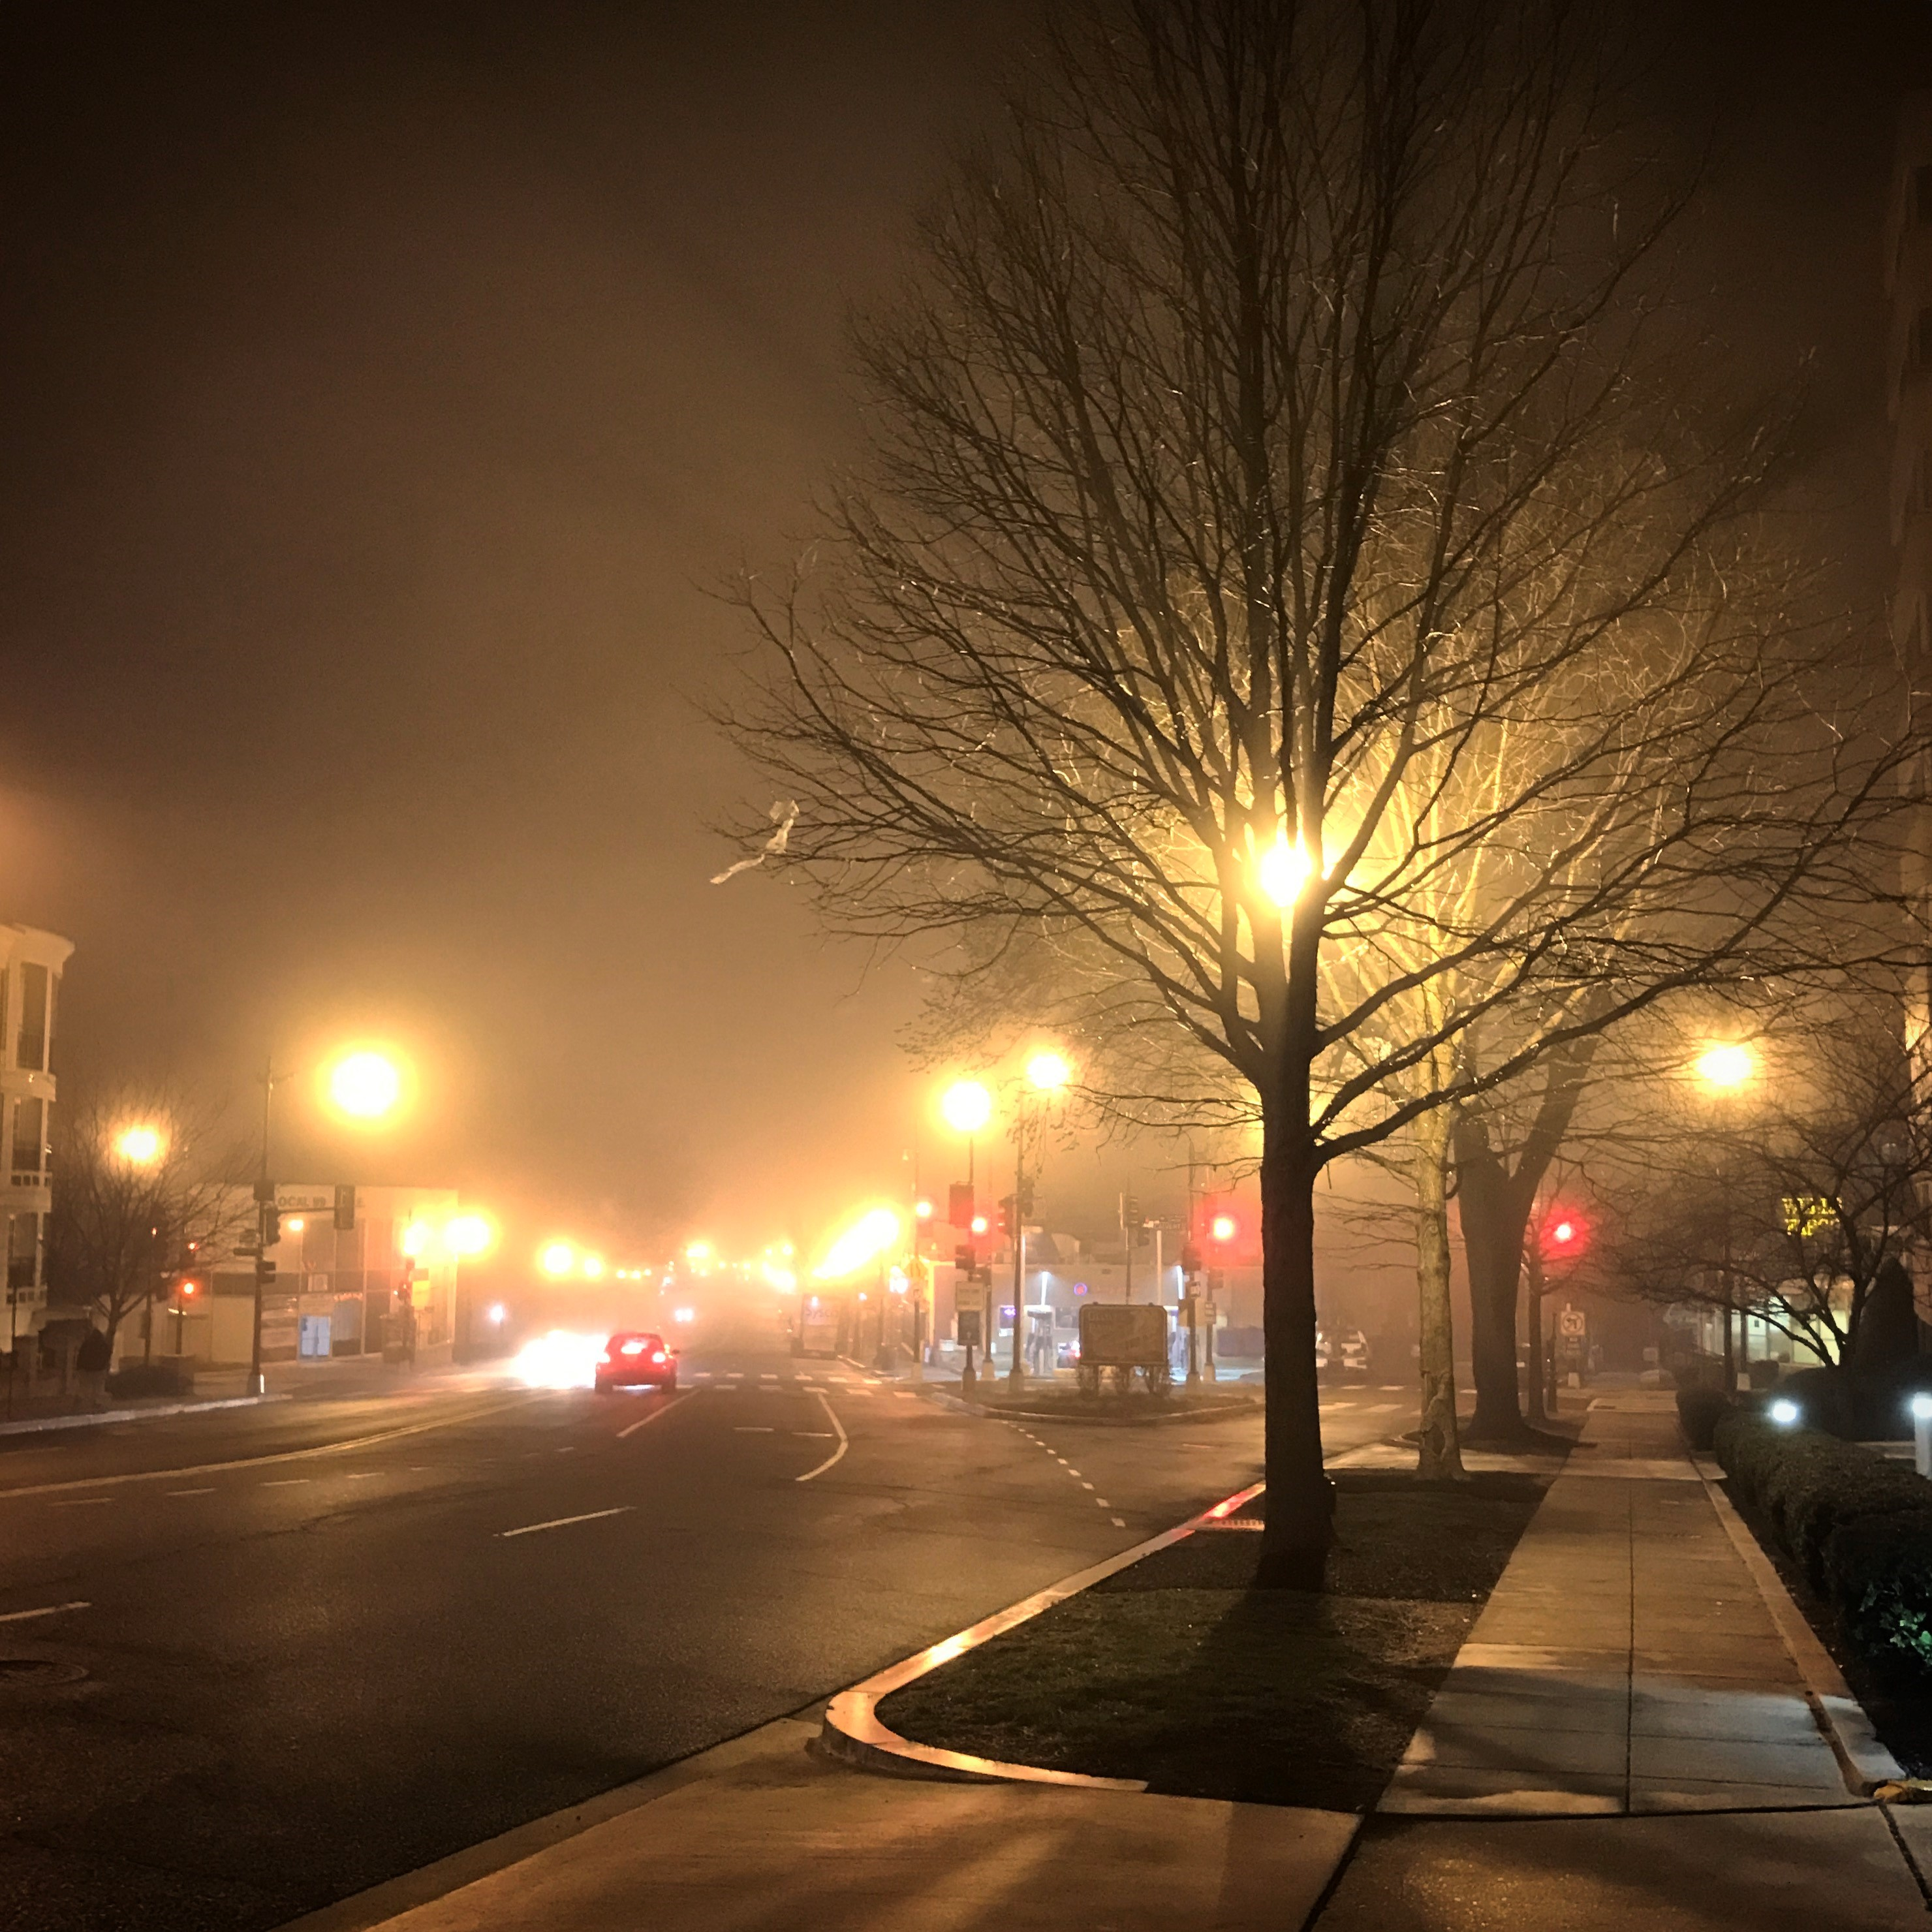 Since Glover Park is pretty close to the waterfront, fog sometimes rolls in at night.. (@11tuan8530)